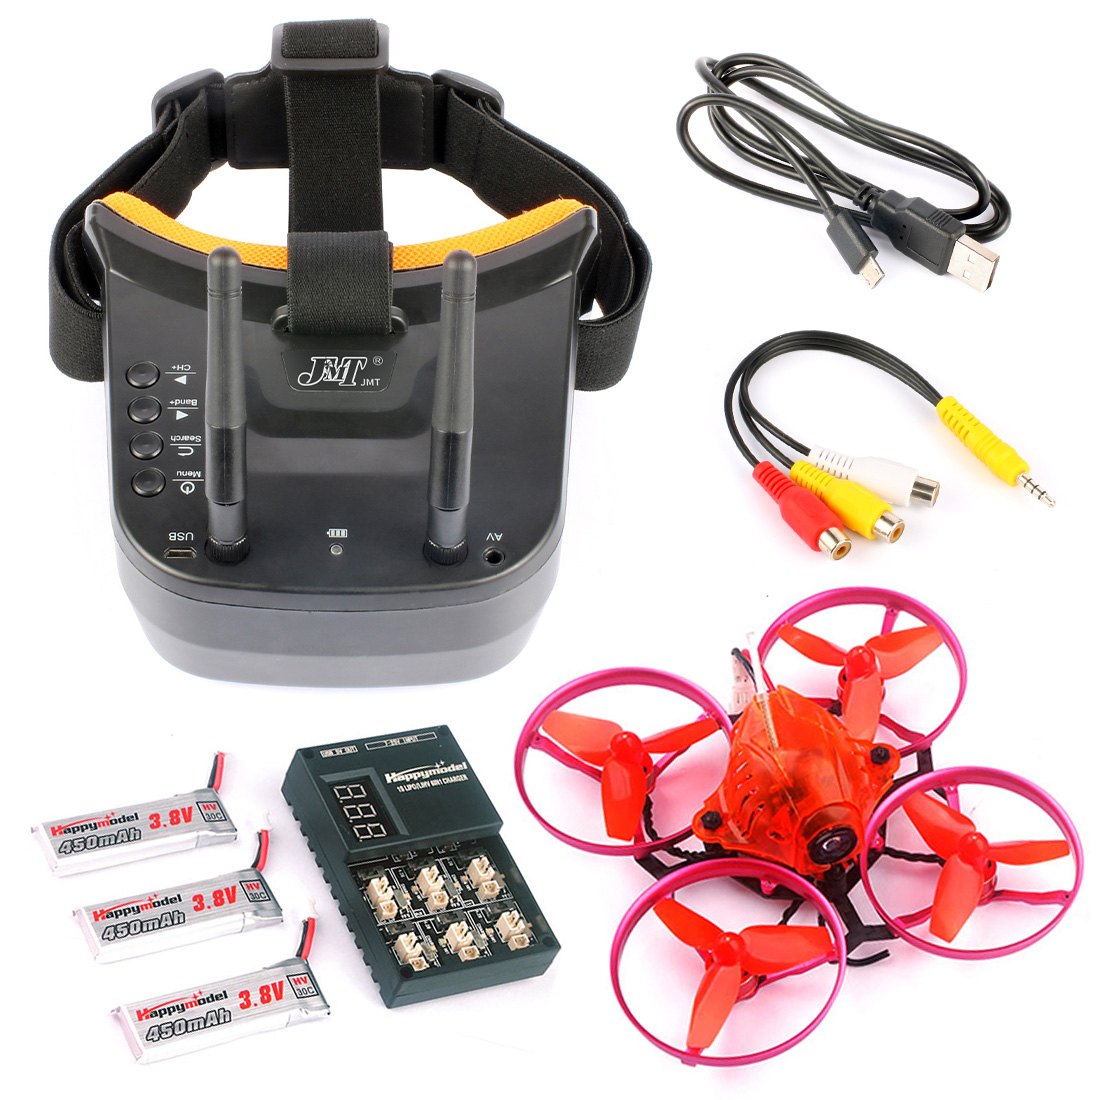 Snapper7 Brushless Whoop Racer Drone BNF Tiny 75mm FPV 700TVL HD Camera VTX & Double Antenna 5.8G Video Goggles for Frsky RX радиоуправляемый квадрокоптер betafpv beta65s whoop quad frsky rx bnf